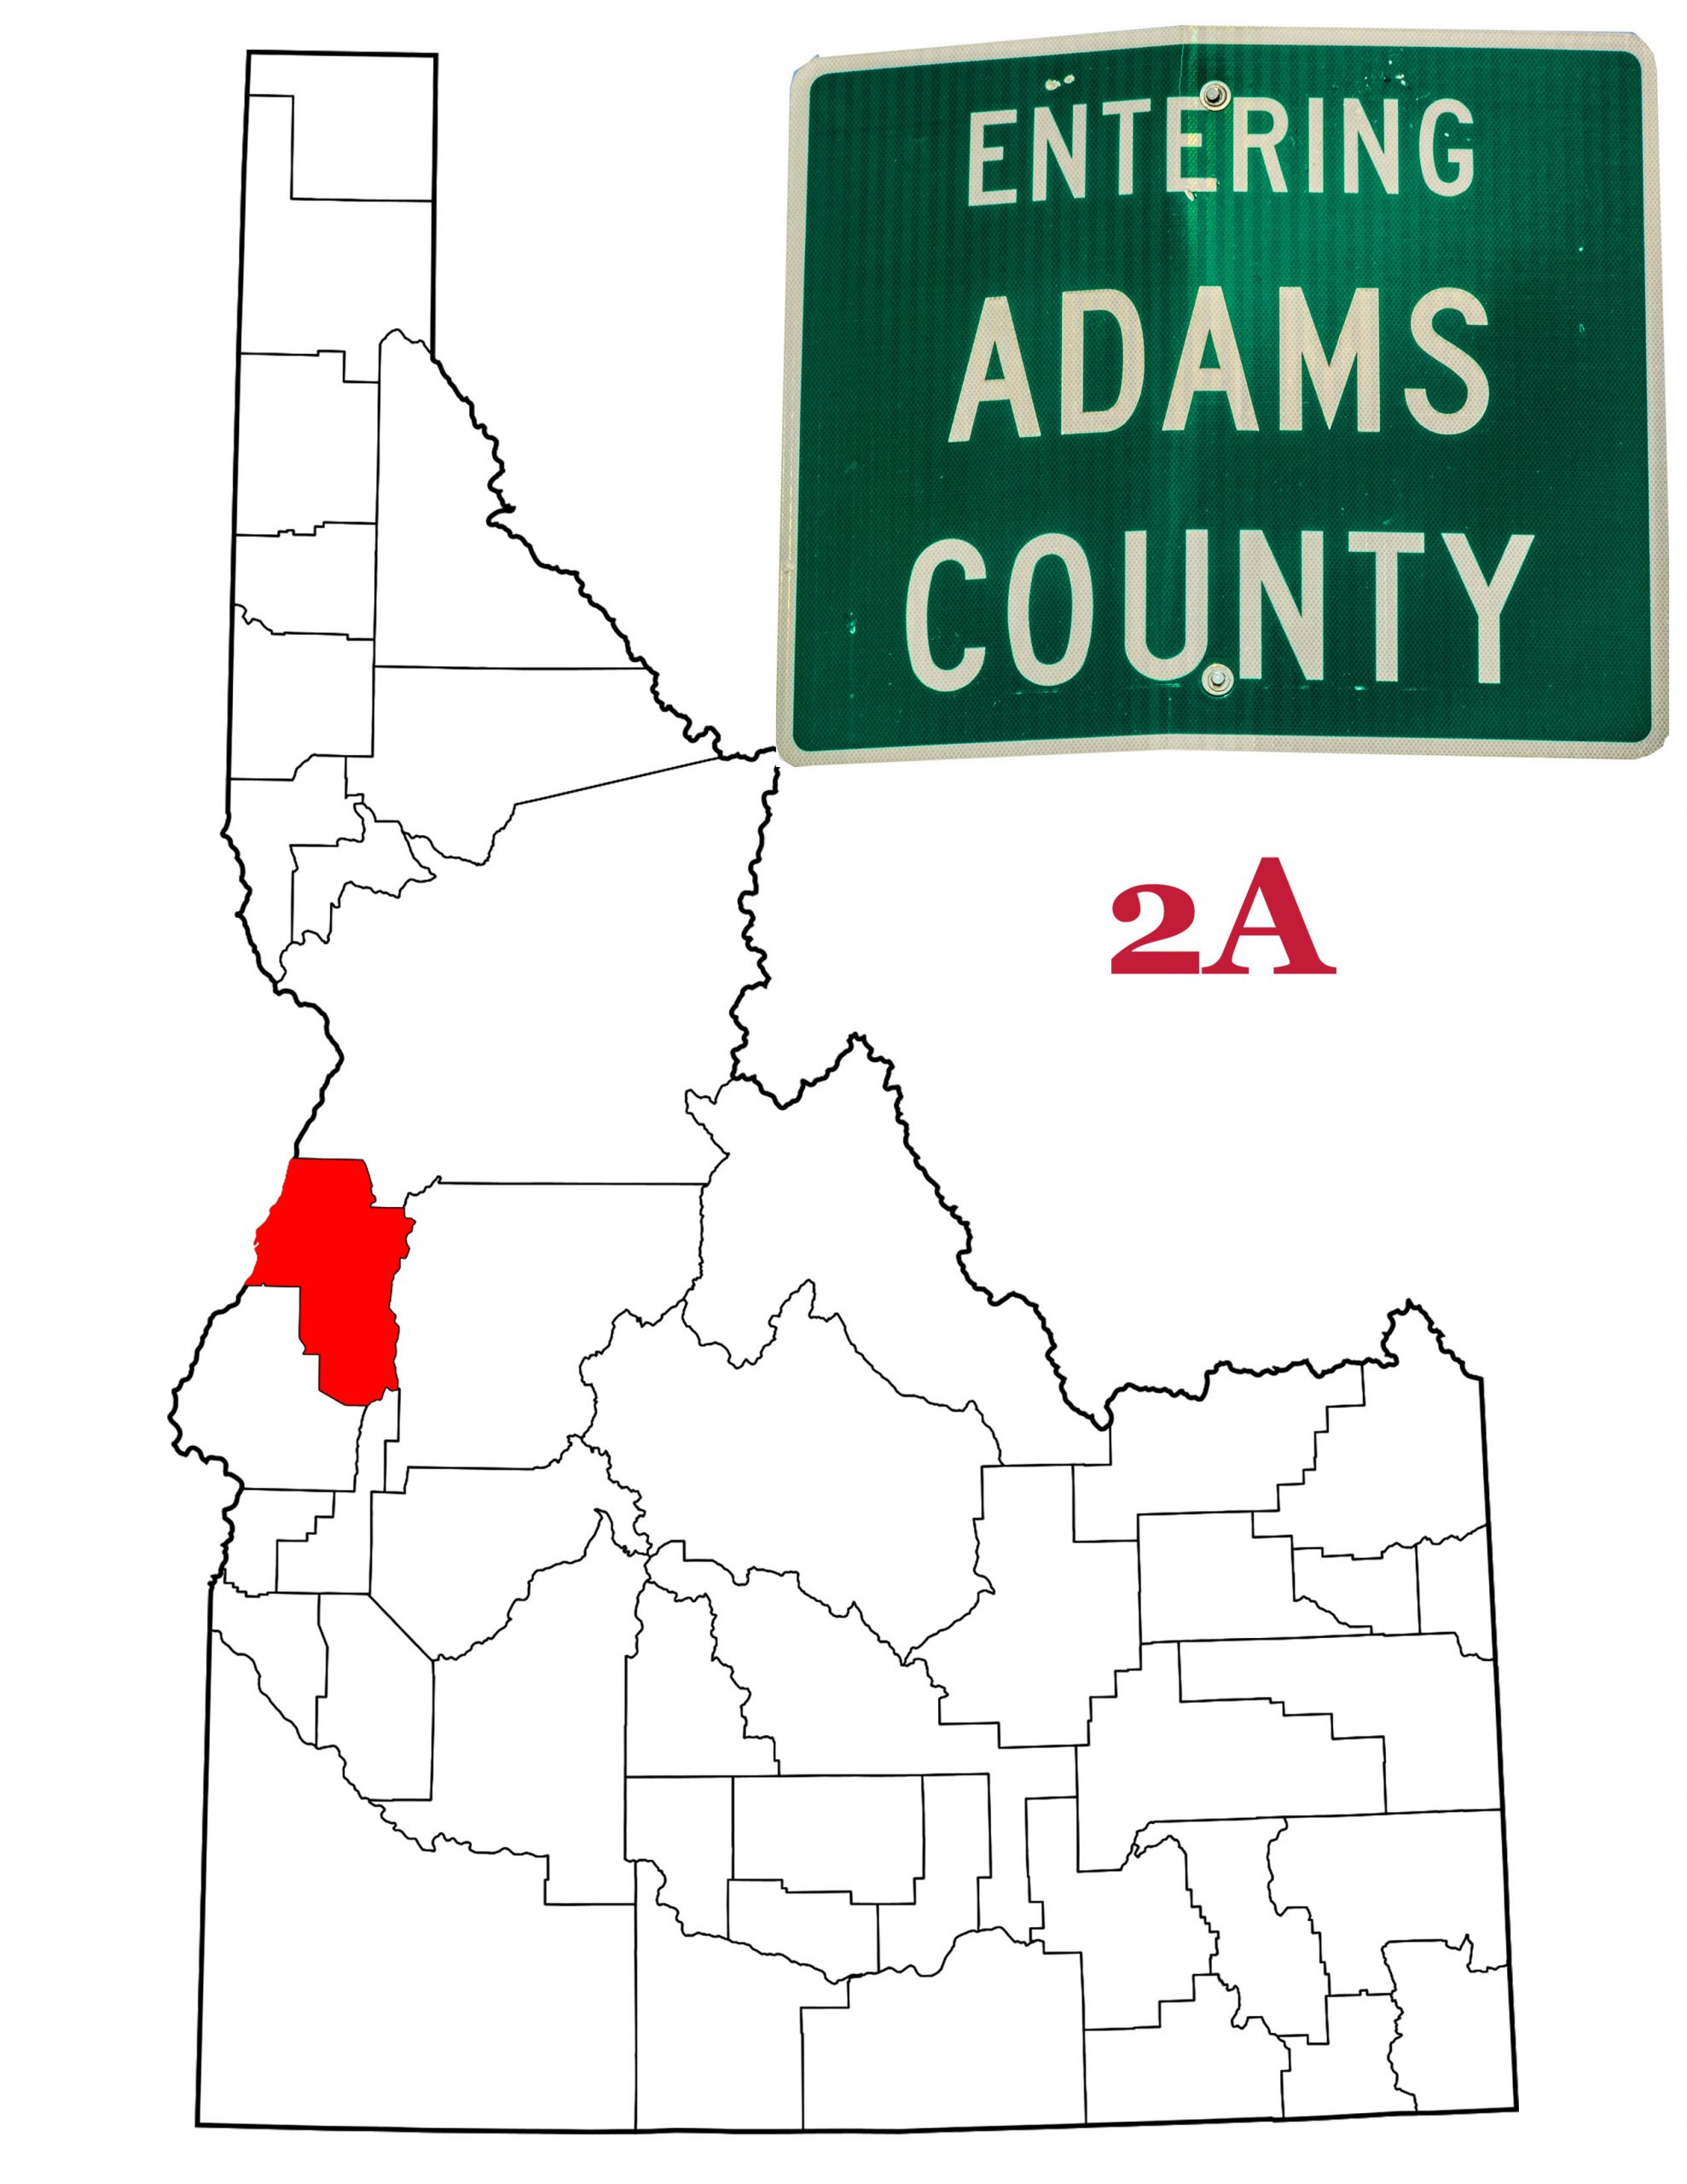 Adams County, Idaho location and sign